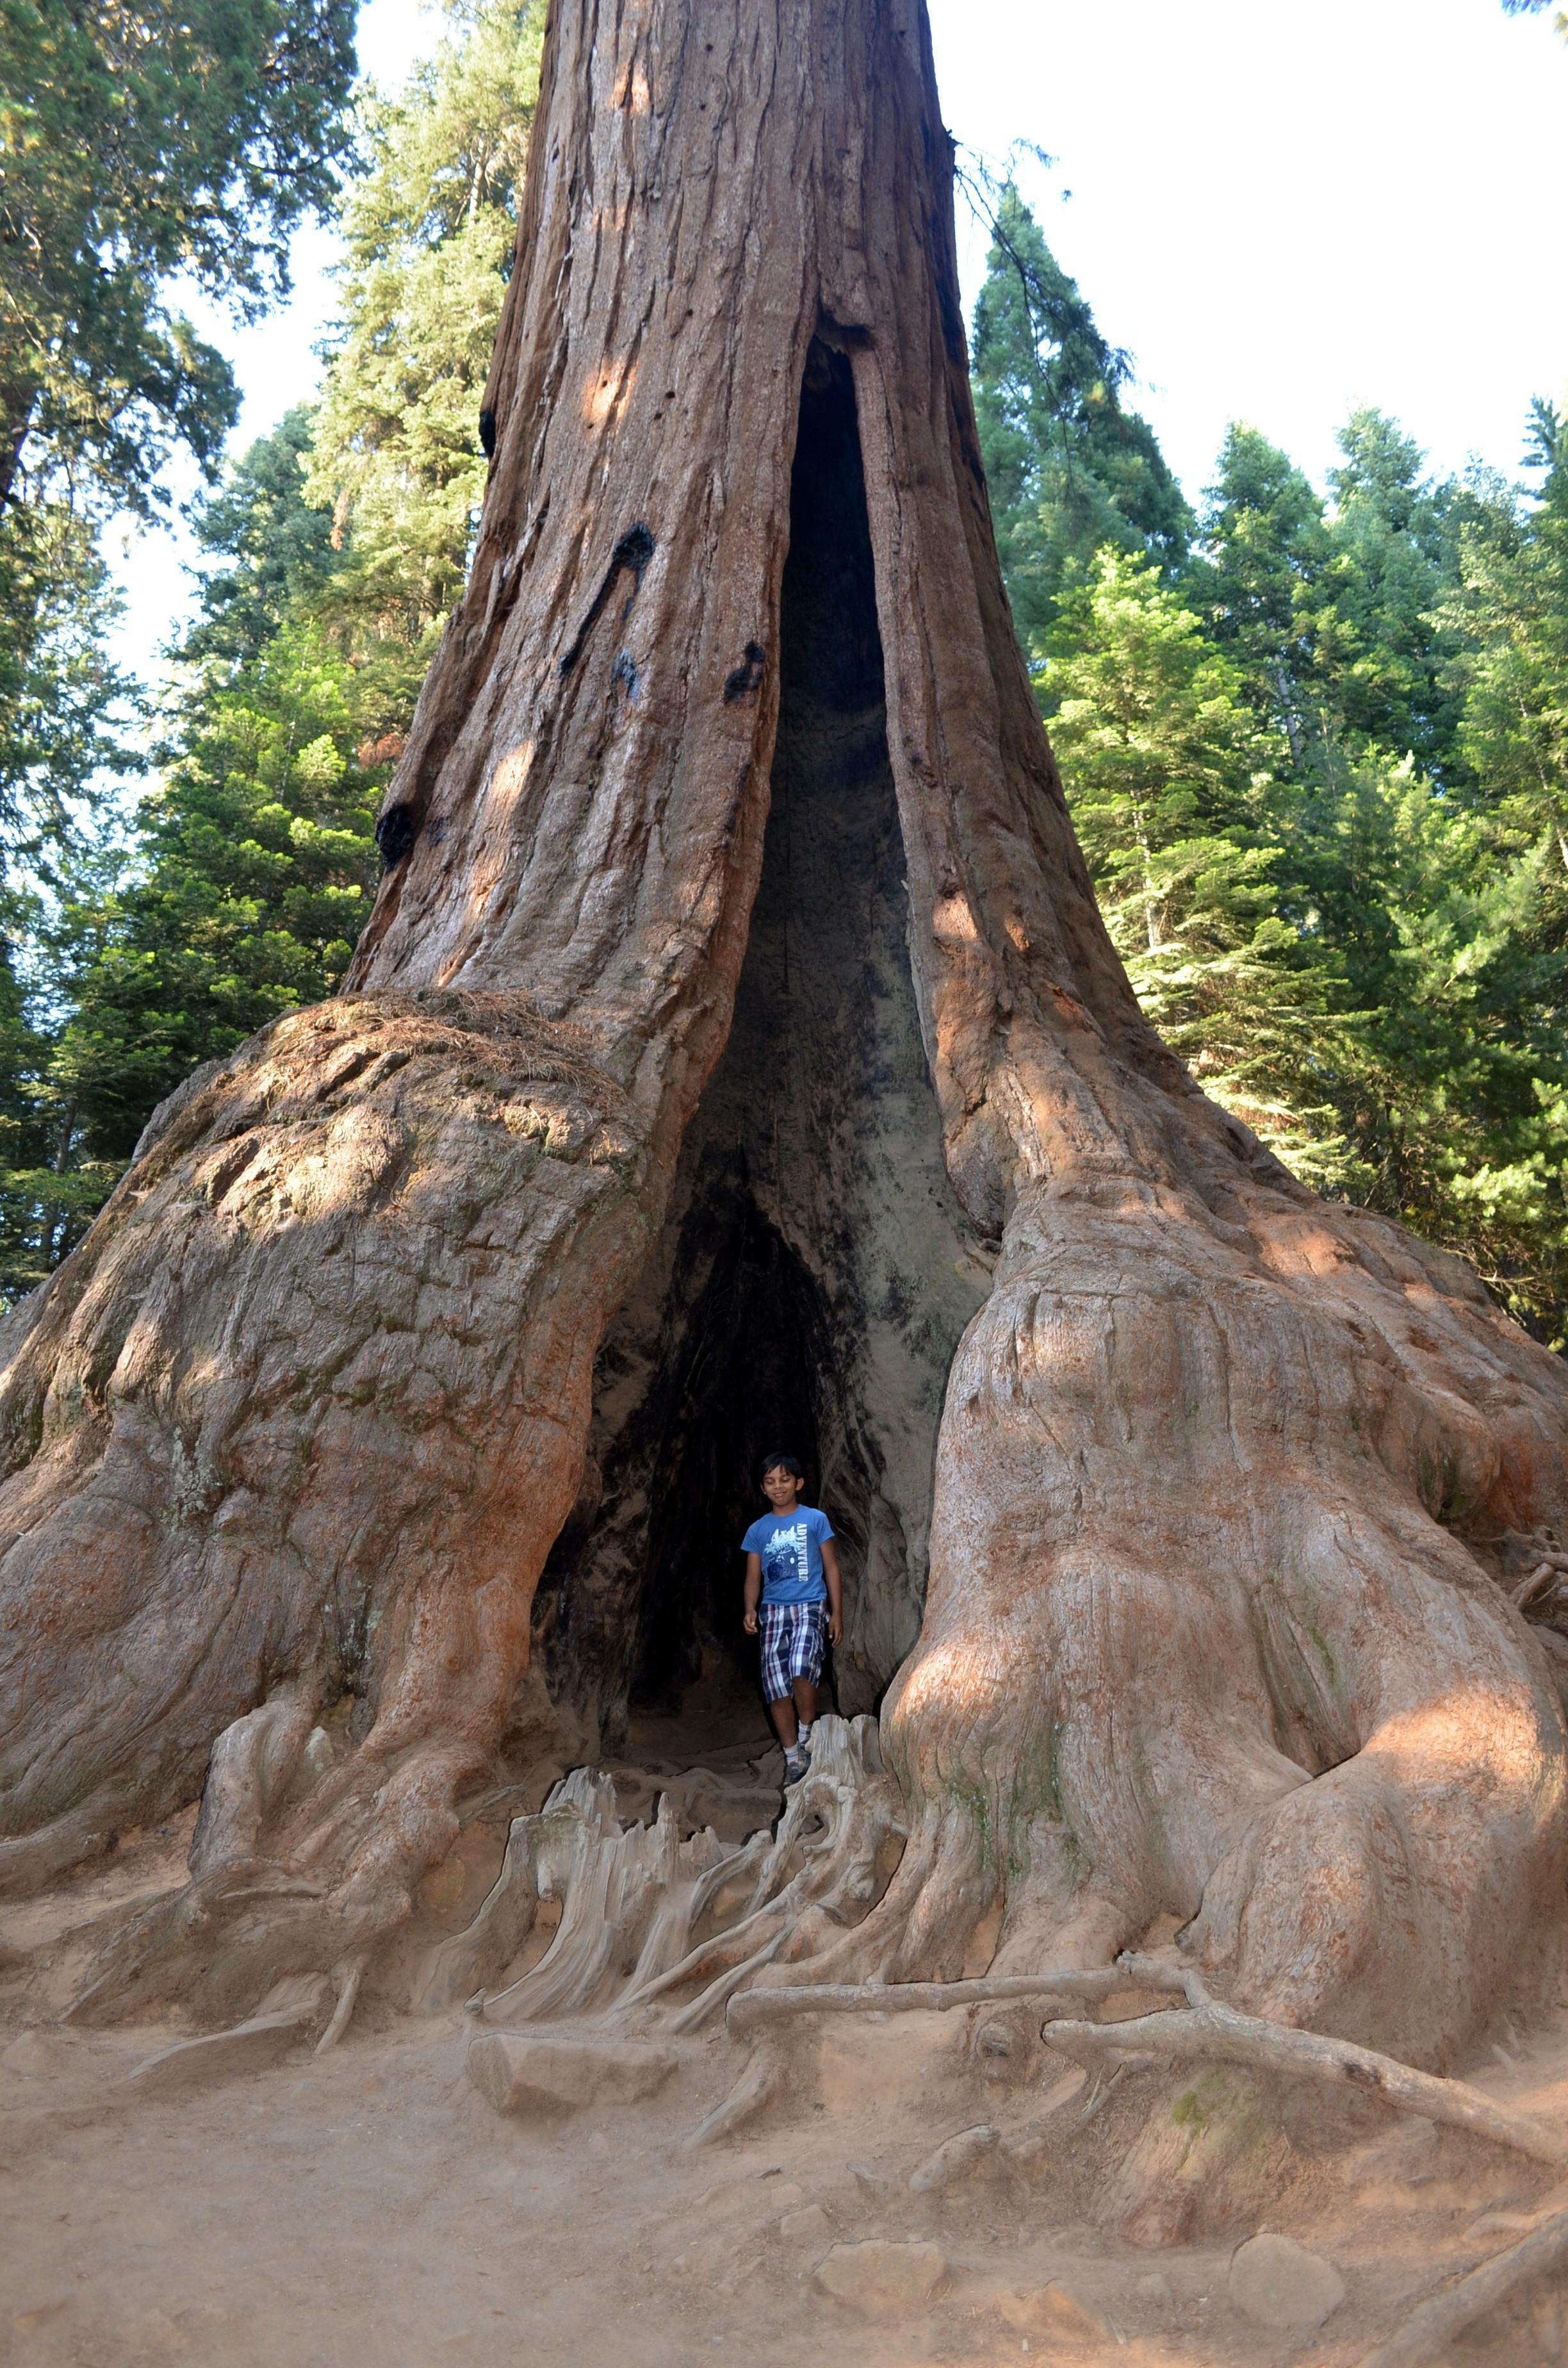 A Giant Sequoia in Sequoia National Park